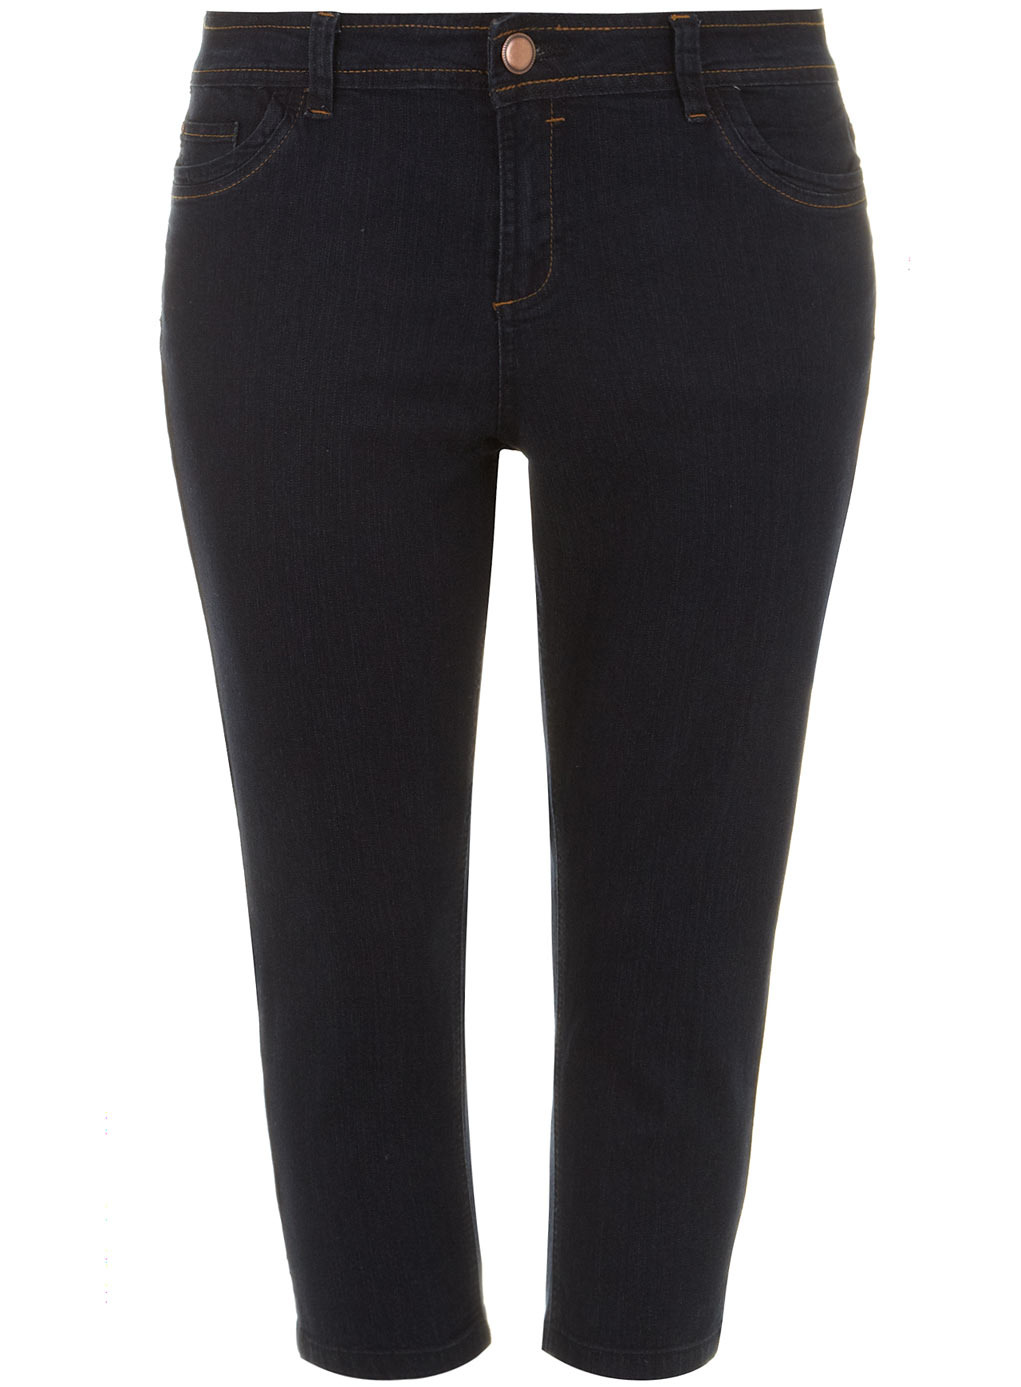 Indigo Denim Cropped Trousers - pattern: plain; waist: high rise; pocket detail: traditional 5 pocket; predominant colour: black; occasions: casual; length: calf length; fibres: cotton - stretch; texture group: denim; fit: skinny/tight leg; pattern type: fabric; style: standard; season: s/s 2014